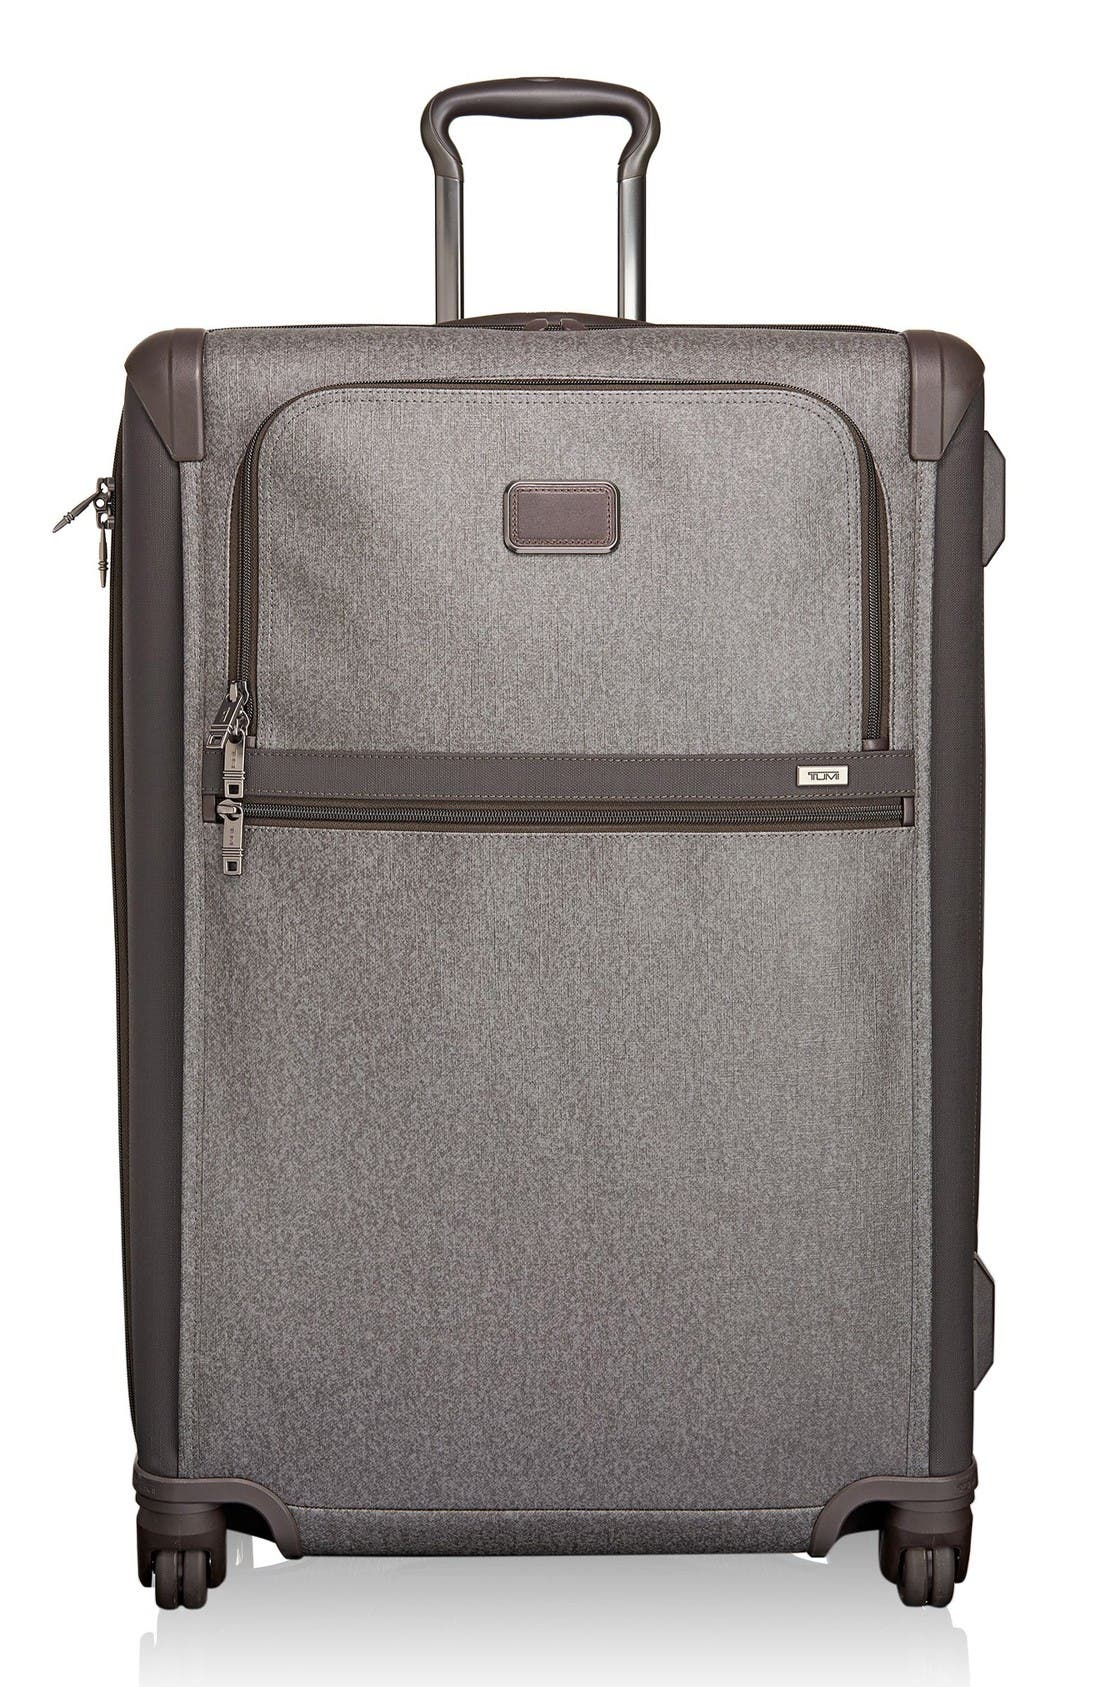 TUMI Alpha 2 Extended Trip 29-Inch Four-Wheel Packing Case